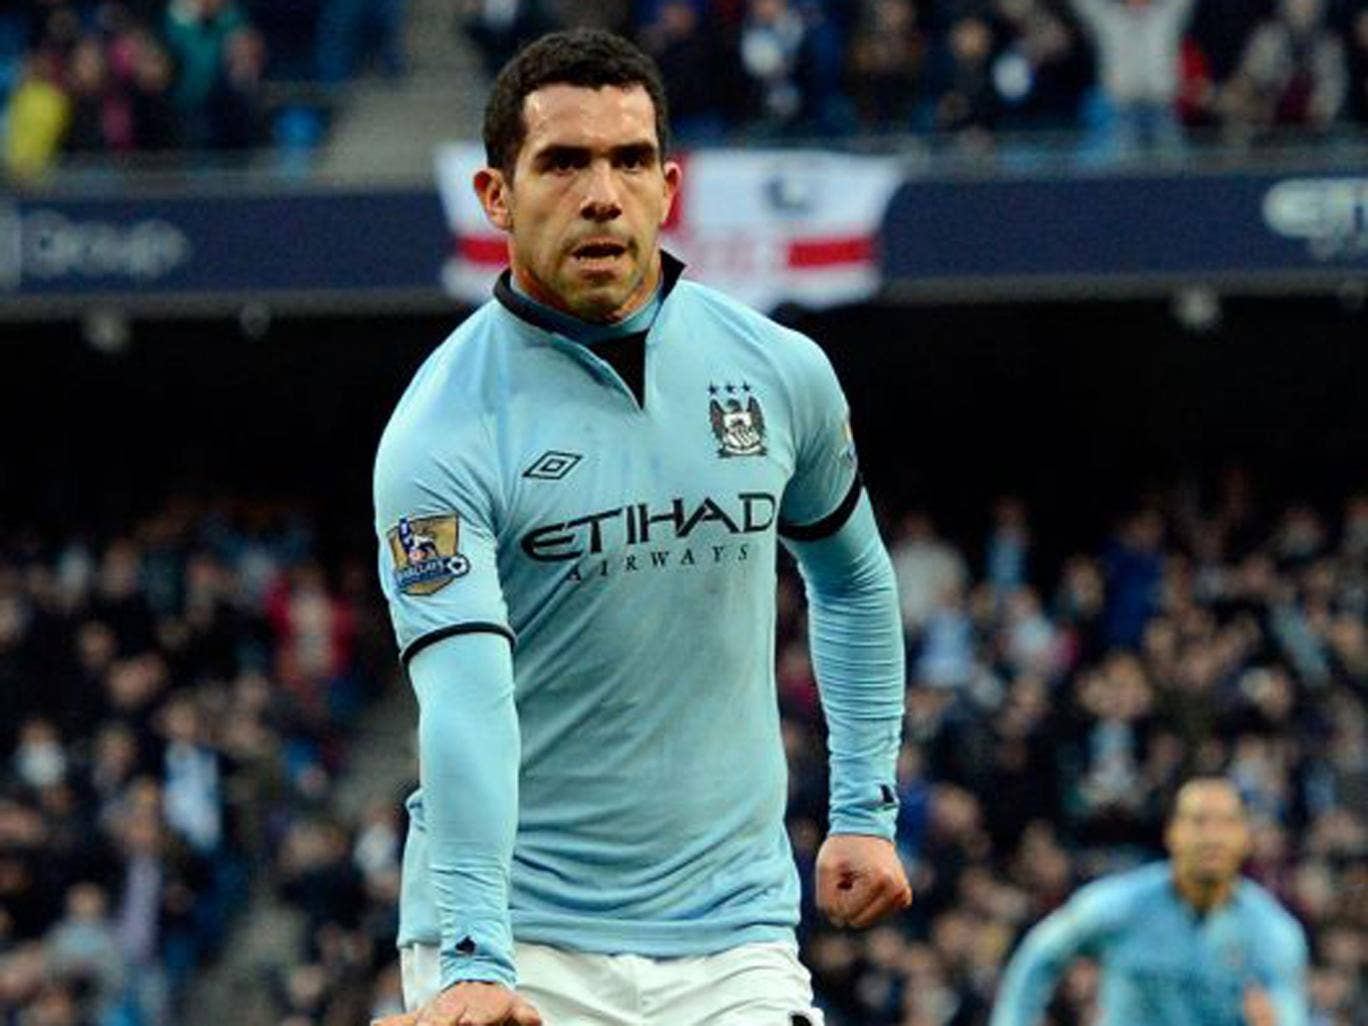 Carlos Tevez has 18 months left on his current deal with City